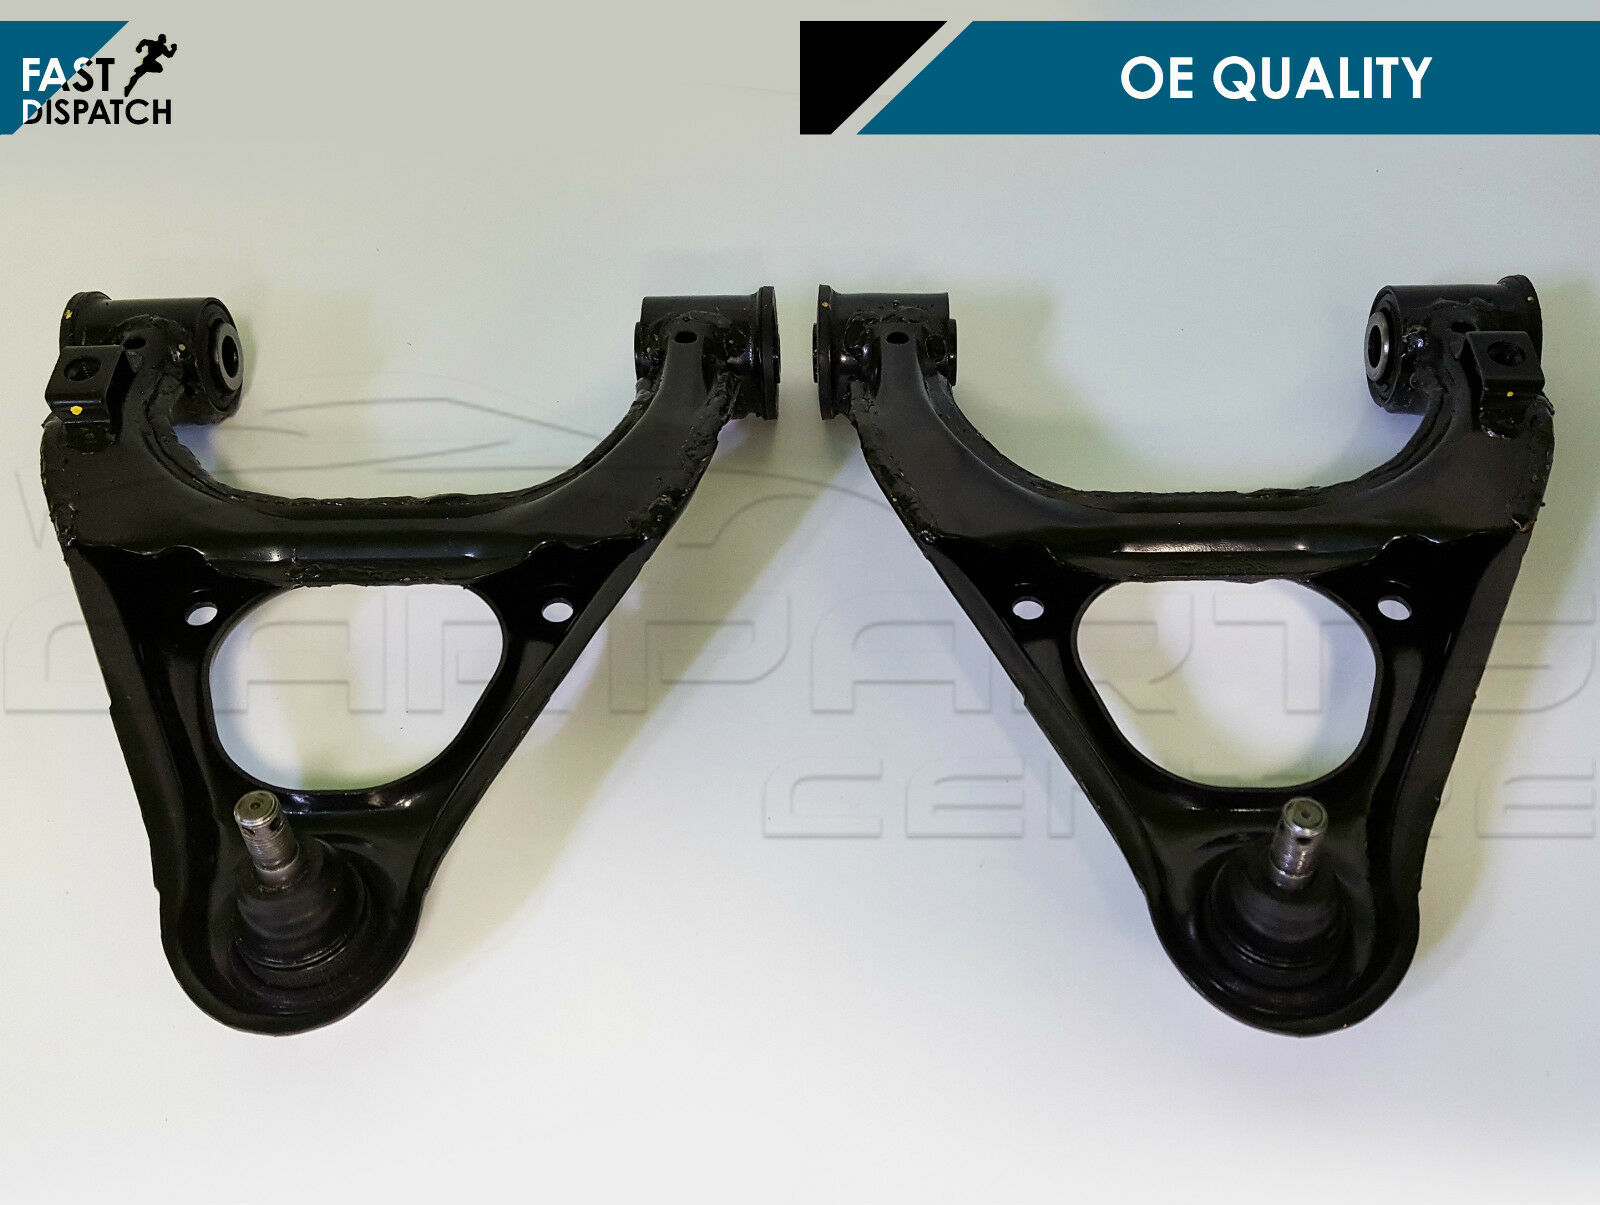 Wishbone Left 98 to 05 New Suspension Arm fits MAZDA MX5 Mk2 1.8 Front Lower